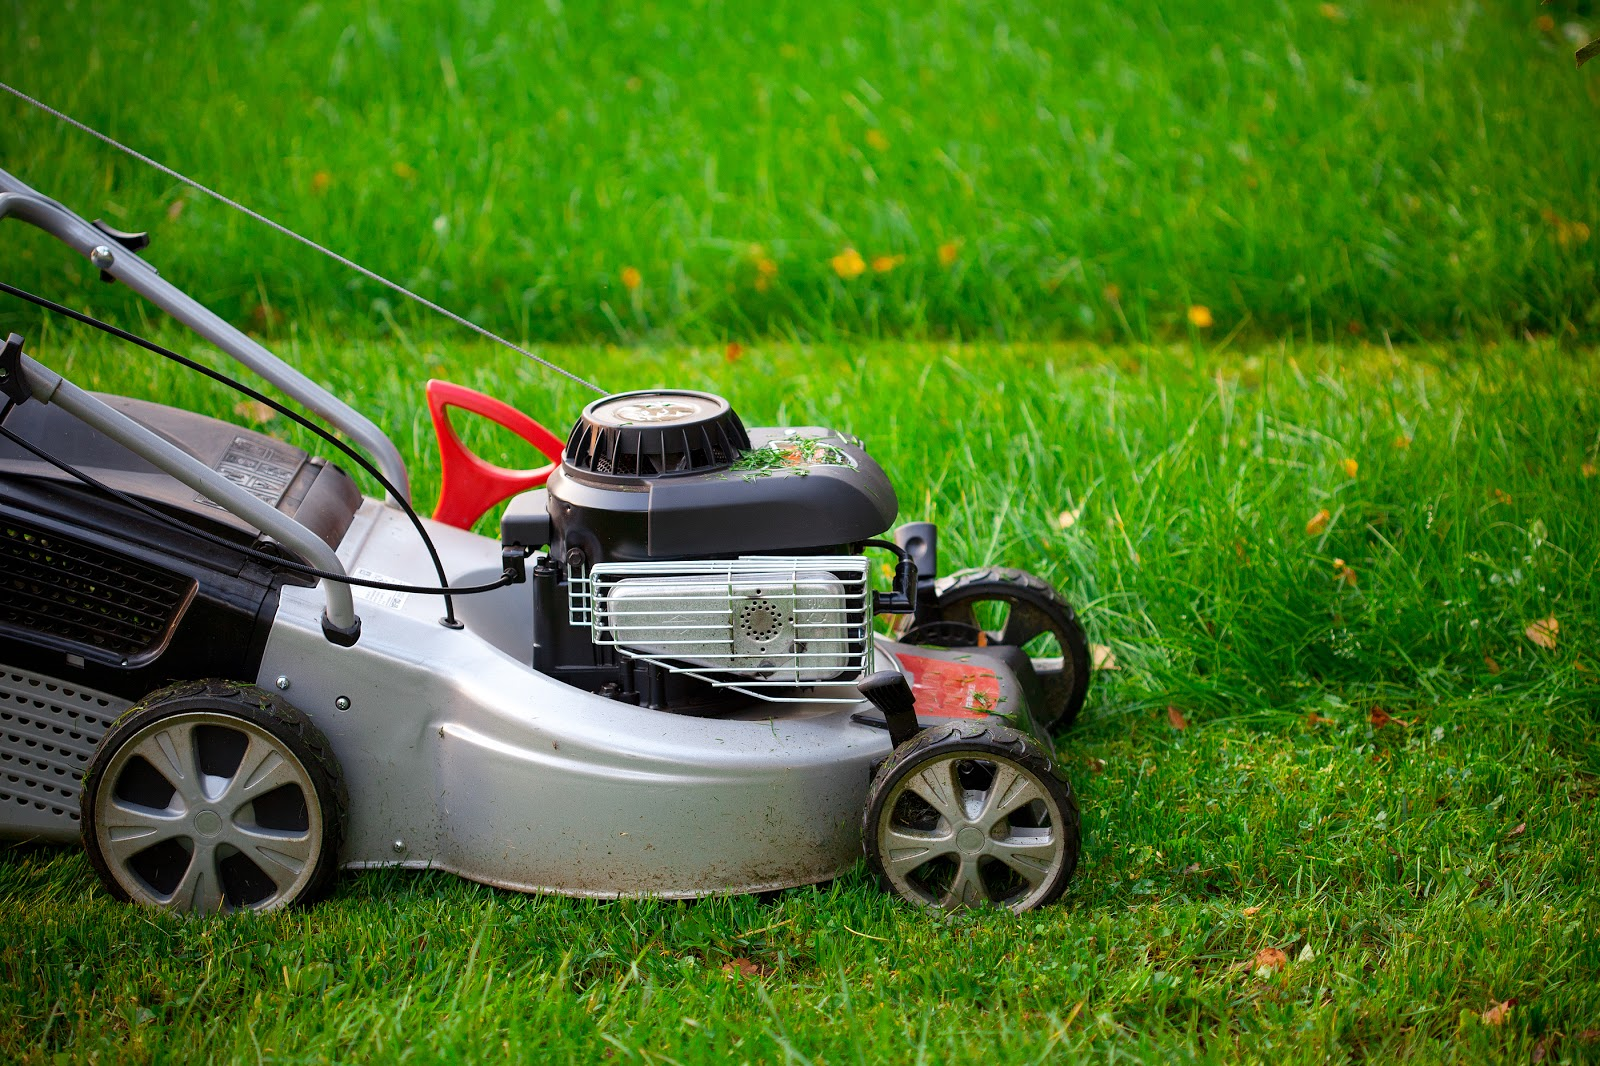 green lawn getting lawn care services with a mower